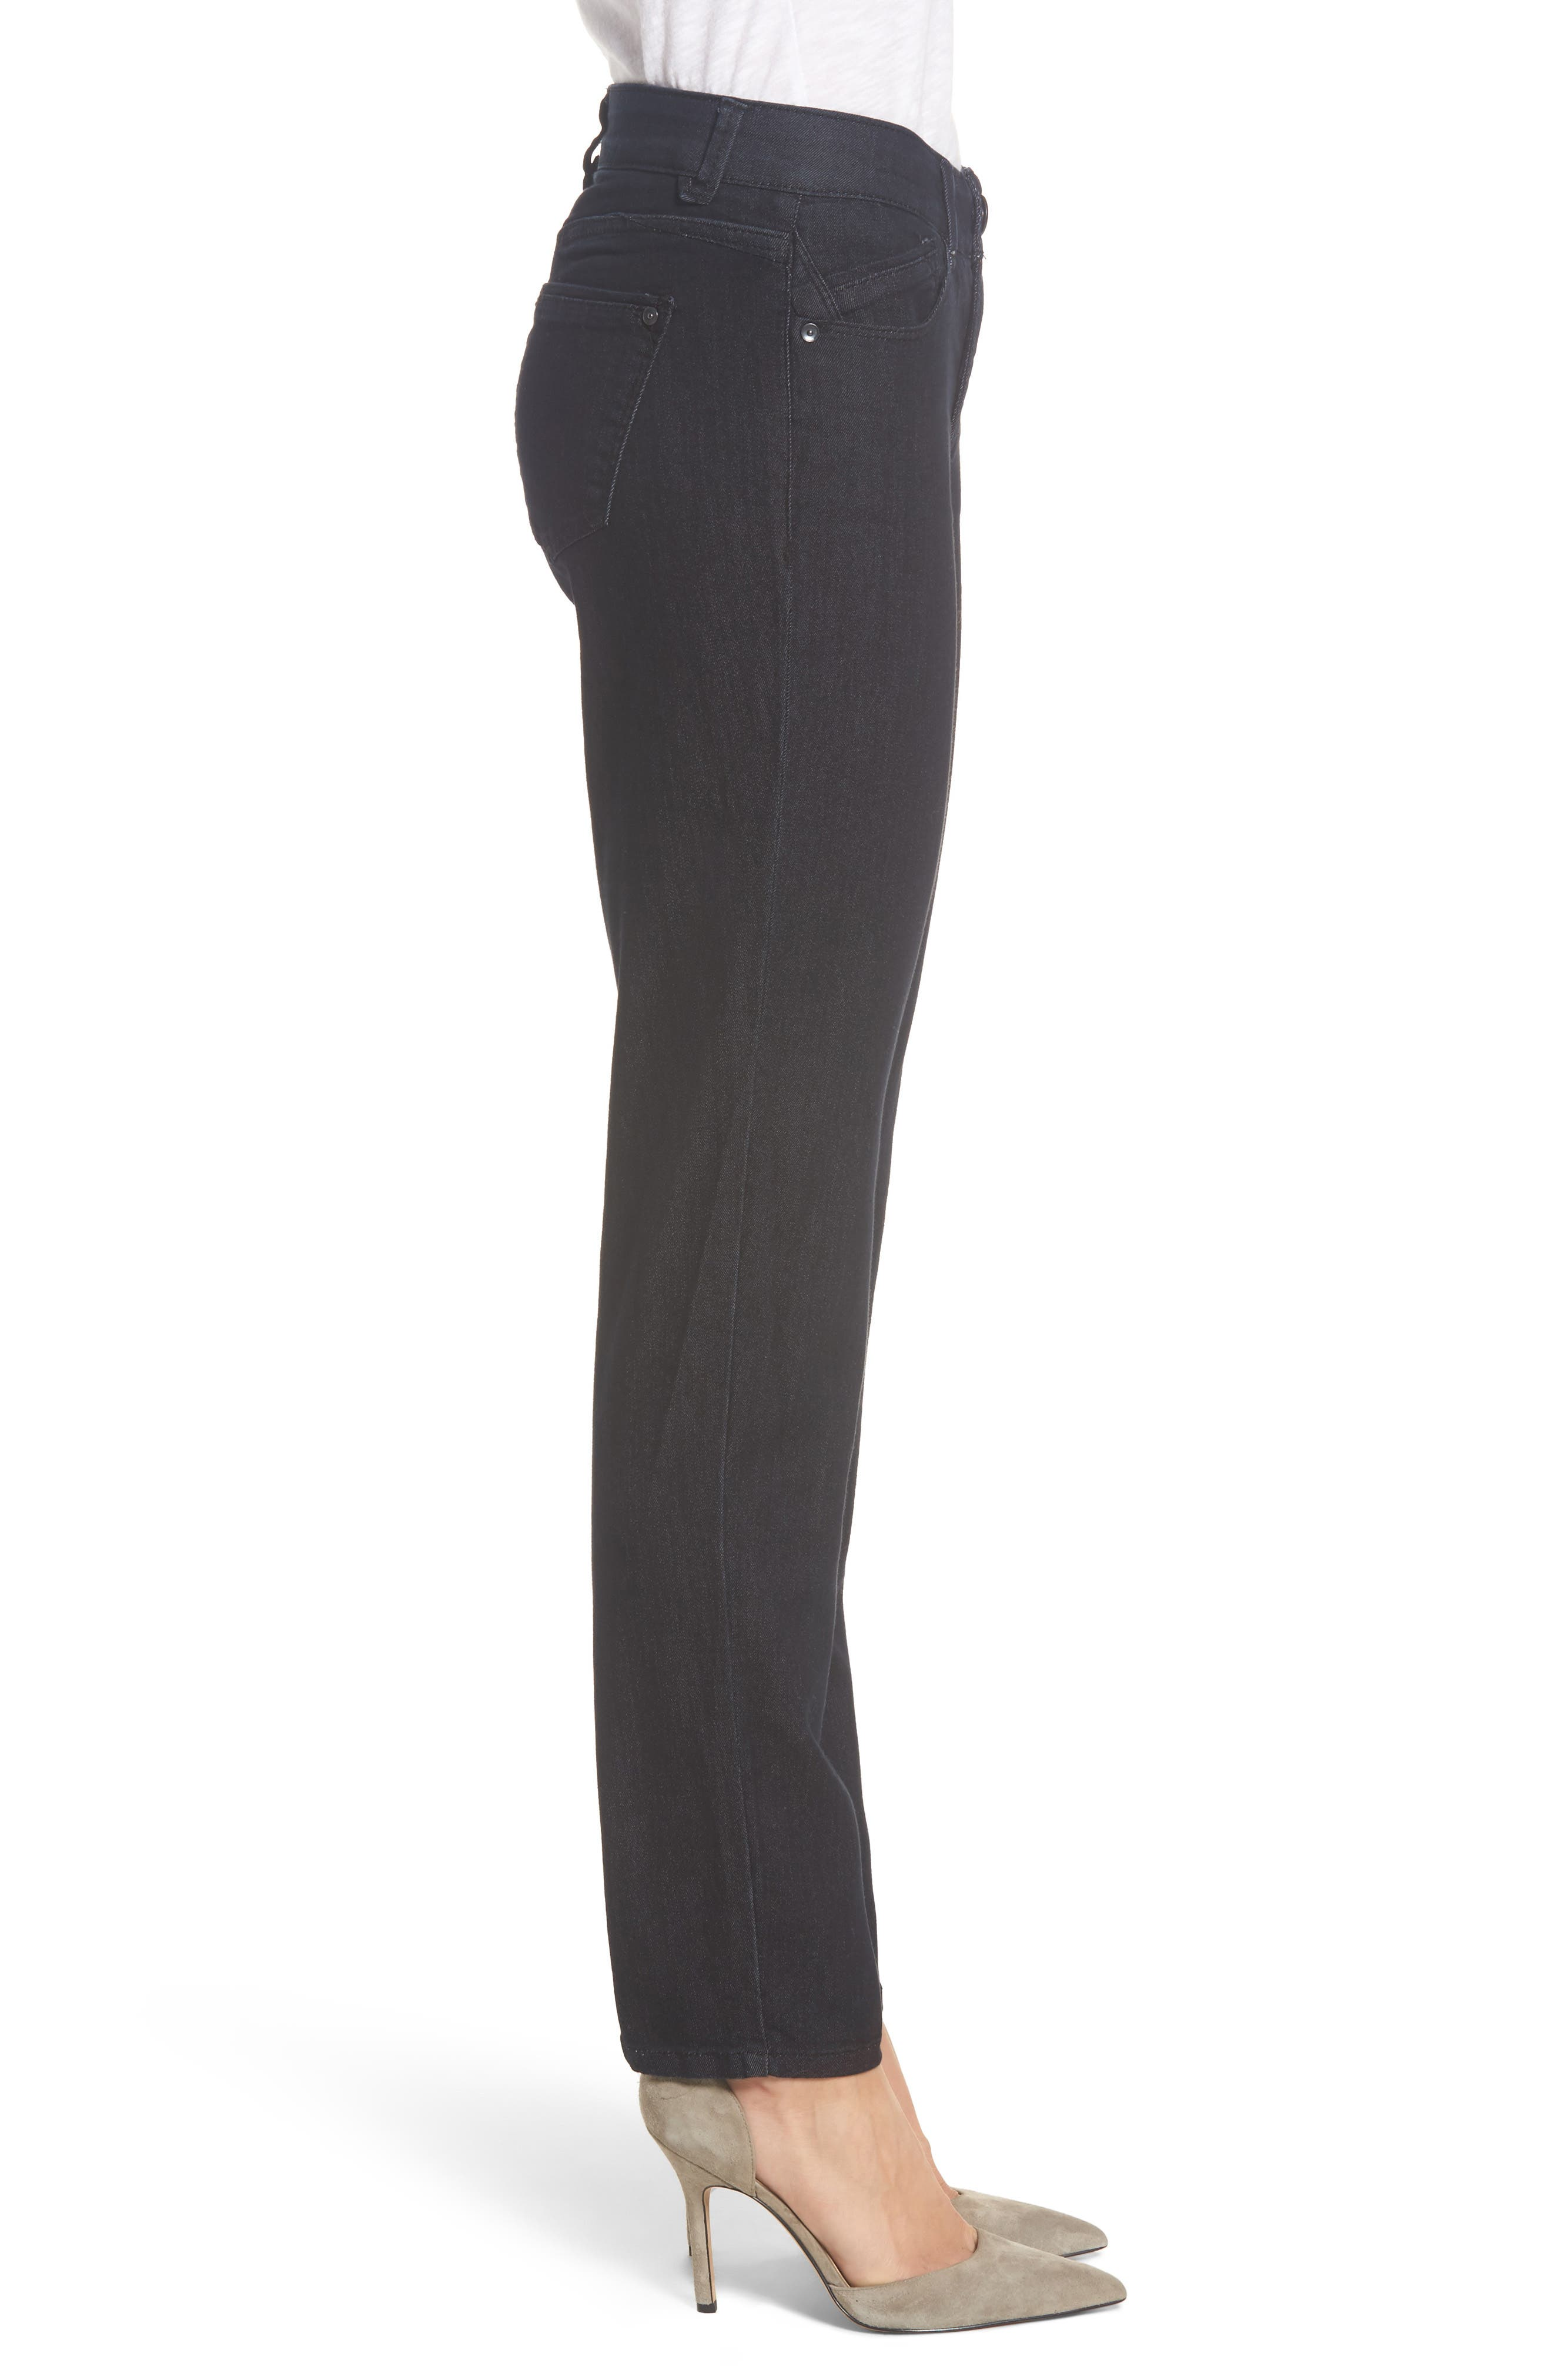 Alternate Image 3  - Wit & Wisdom Ab-solution Straight Leg Jeans (Regular & Petite) (Nordstrom Exclusive)